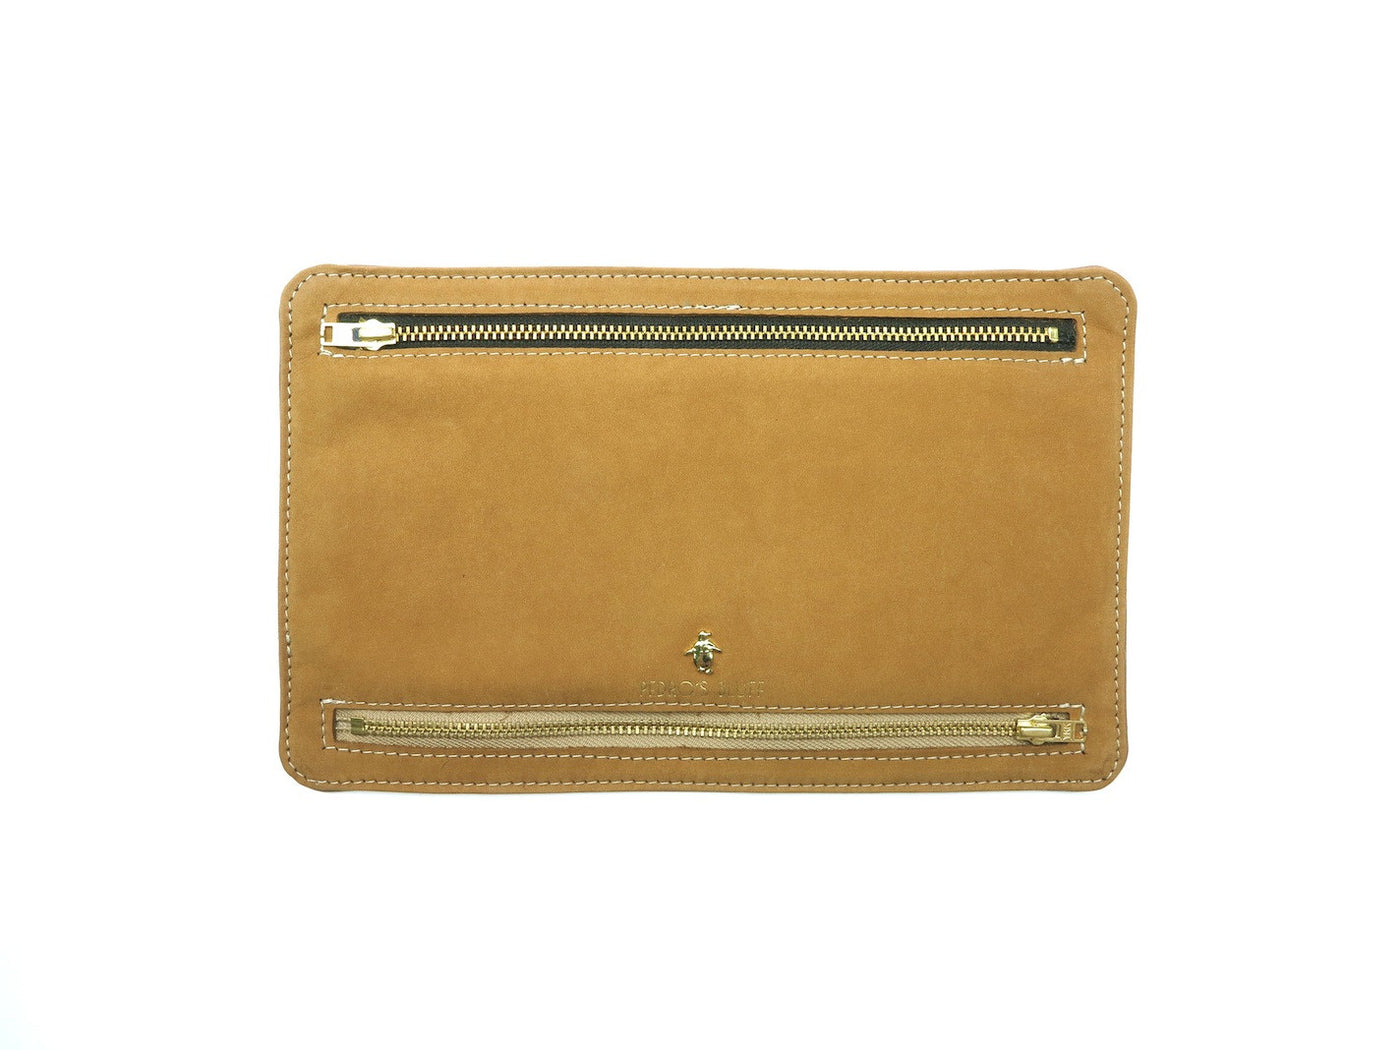 Globehopper Wallet - Oh Honey - PEDRO'S BLUFF - New Zealand Leather Bags & Accessories